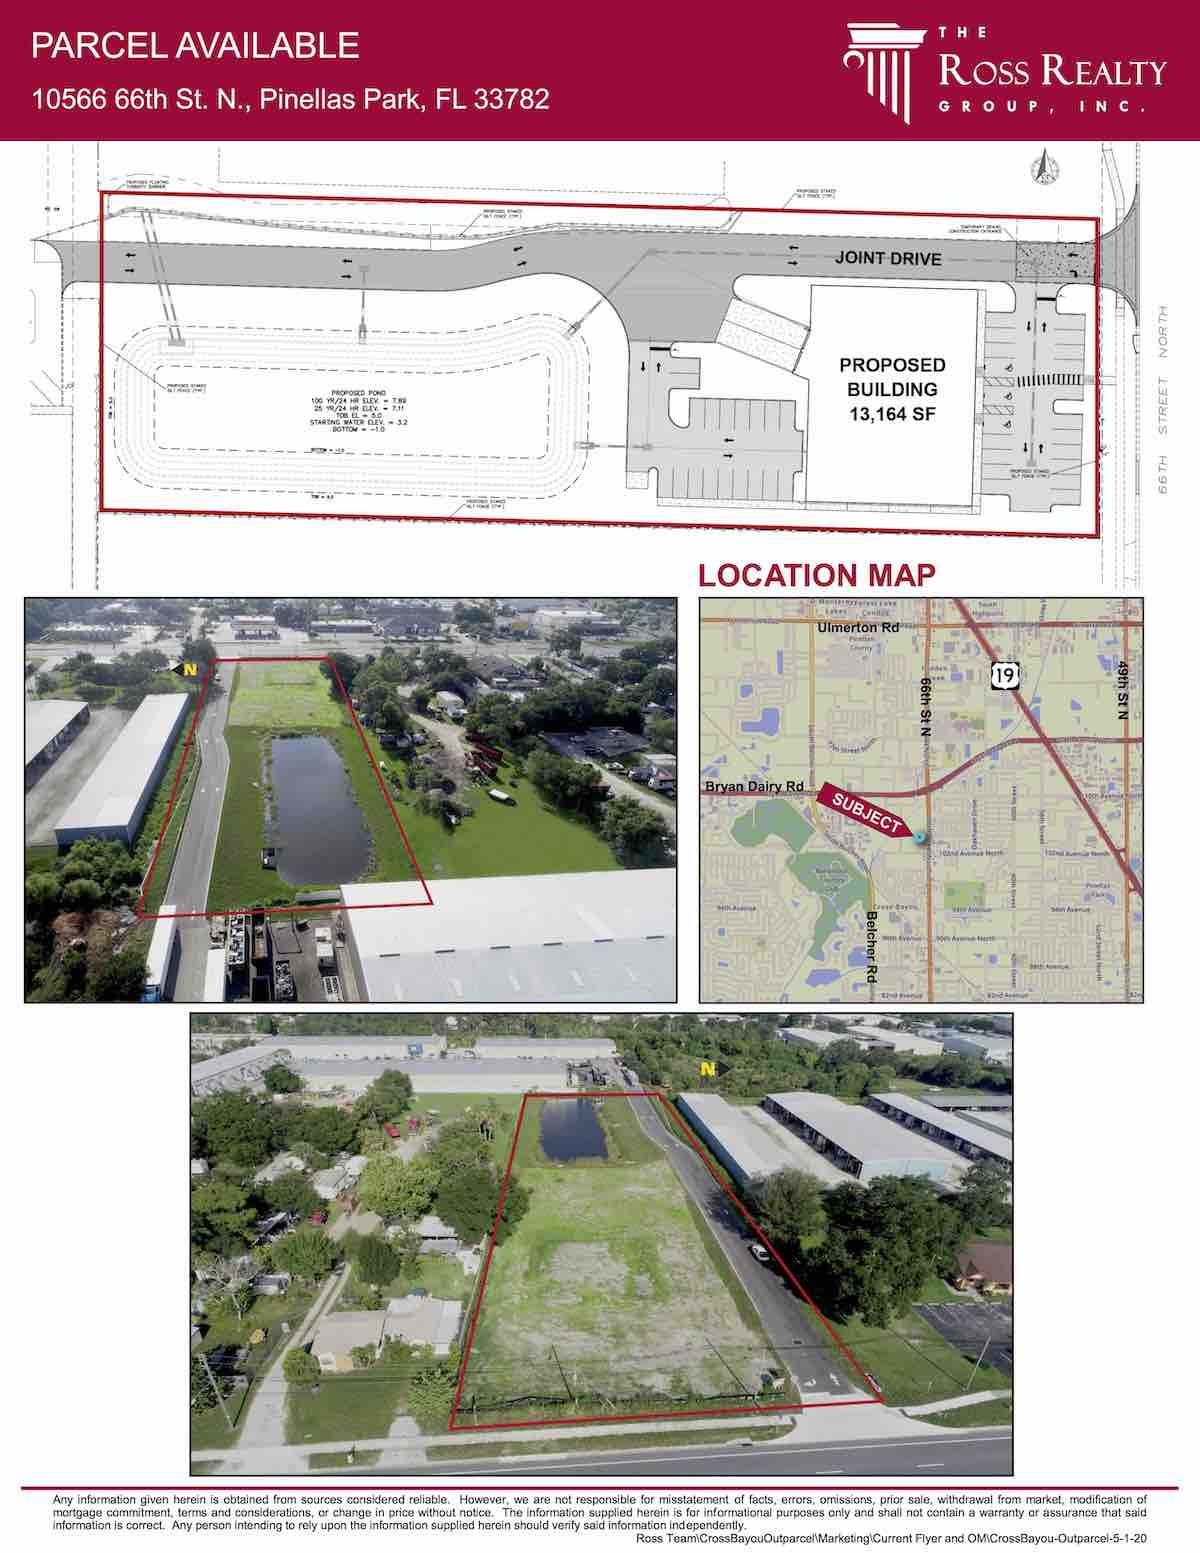 FOR SALE - Cross Bayou Industrial Park – Outparcel - 66th Street Land - 10566 66th St. N., Pinellas Park, FL 33782 P2